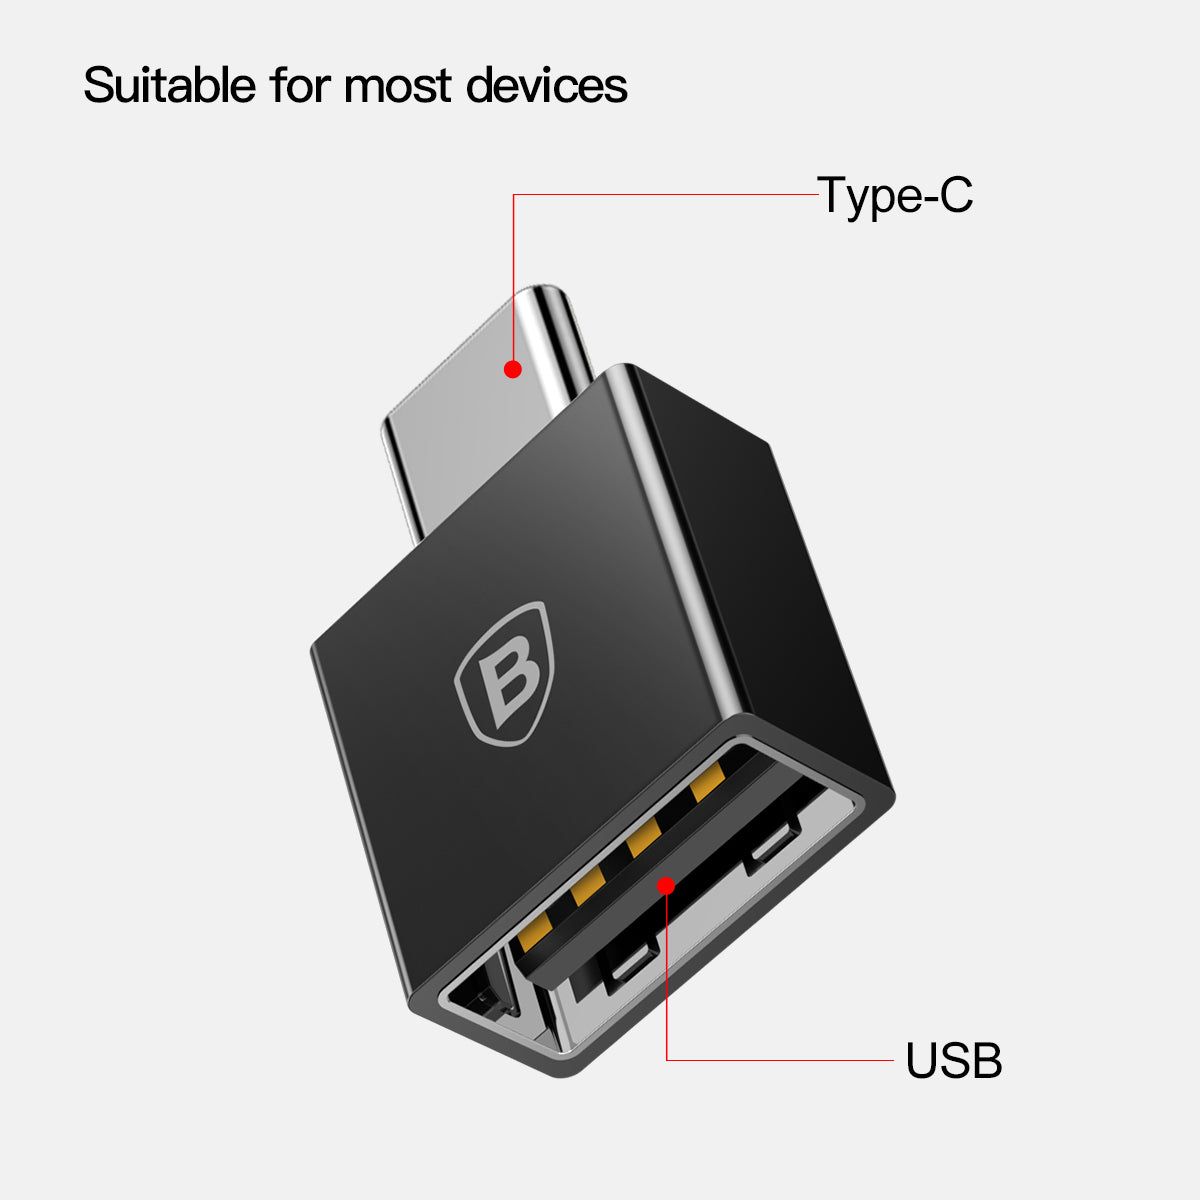 Baseus_Exquisite_Type_C_Male_to_USB_female_adapter_widely_compatible_SD9P25HTUF7Z.jpg